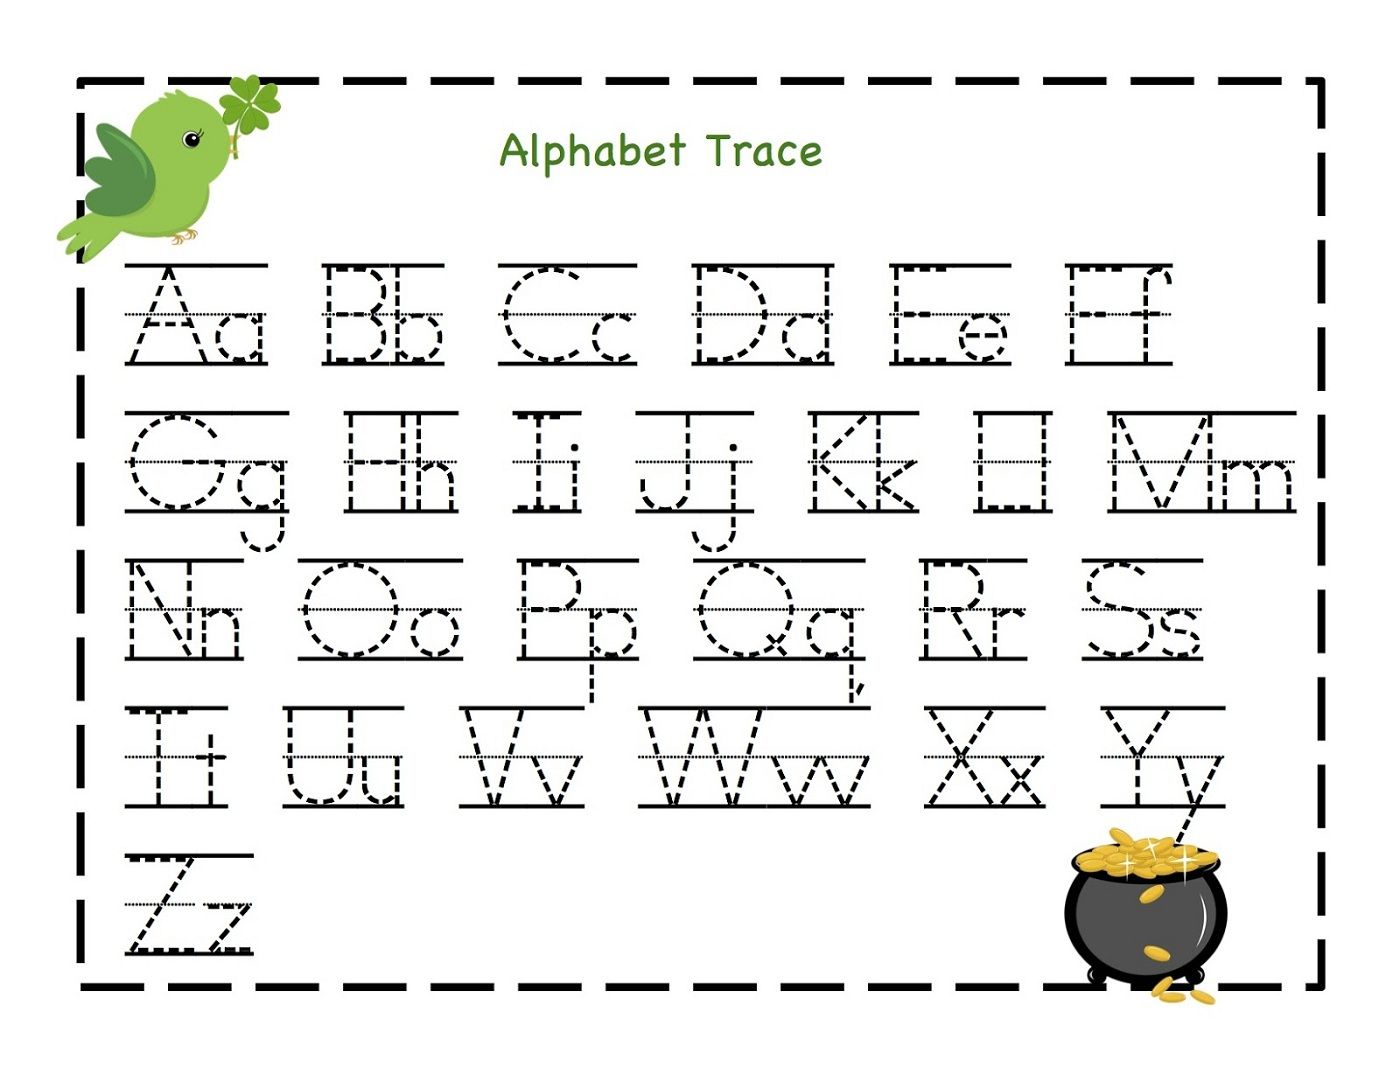 Traceable Letter Worksheets To Print | Alphabet Worksheets pertaining to Tracing Letters Worksheets To Print